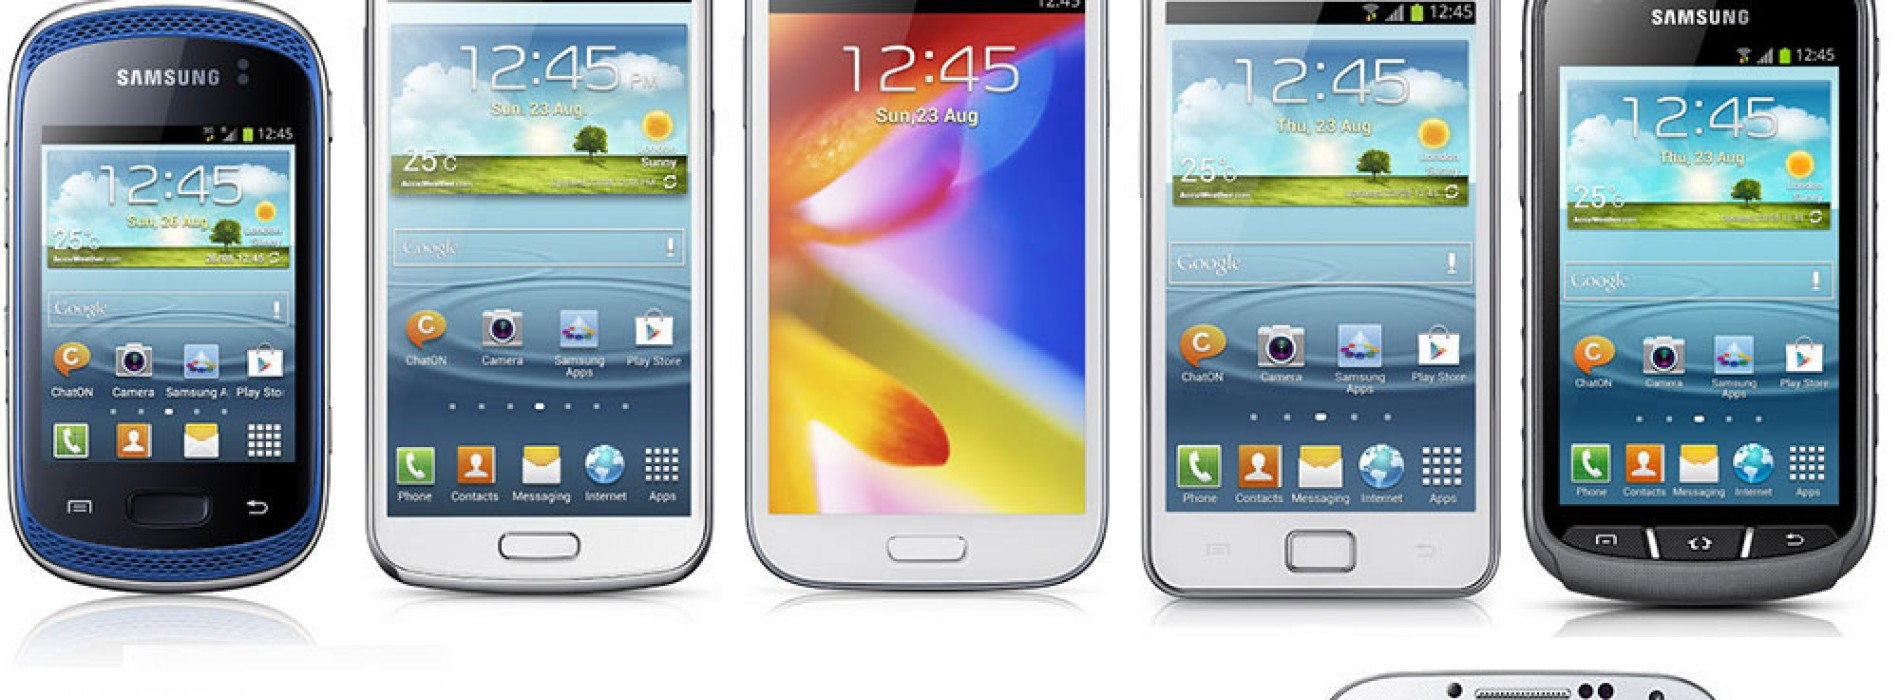 Samsung: Good, bad, and what I'd change [EDITORIAL]